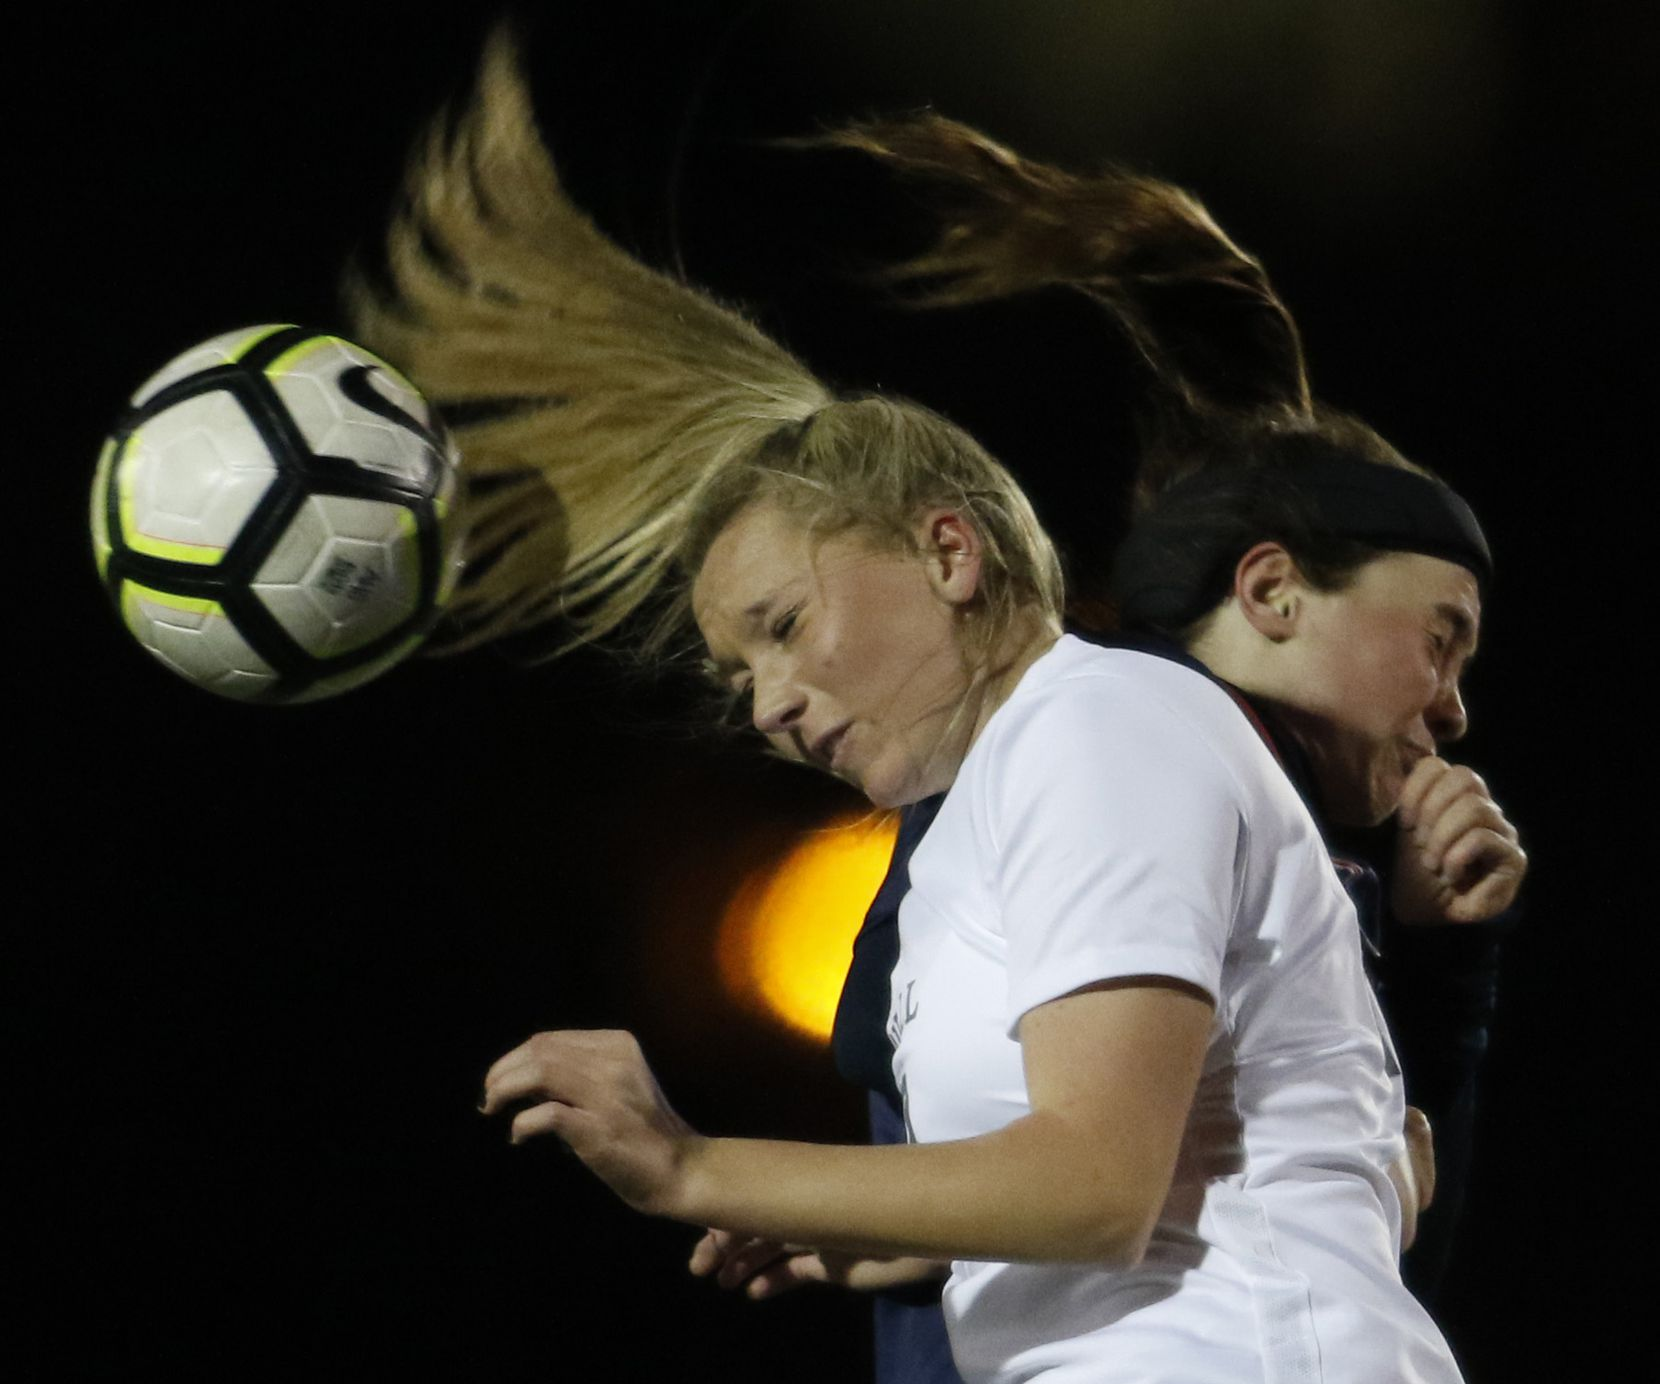 Southlake Carroll defender Lauryn Mazick (23) foreground, winces after colliding with Allen forward Anna Reysa (21) as the two leaped to head the ball to a teammate during first half action. Southlake Carroll won the defensive battle, 1-0. The two teams played their non-district girls soccer game at Colleyville High School in Colleyville on January 10, 2019. (Steve Hamm/ Special Contributor)